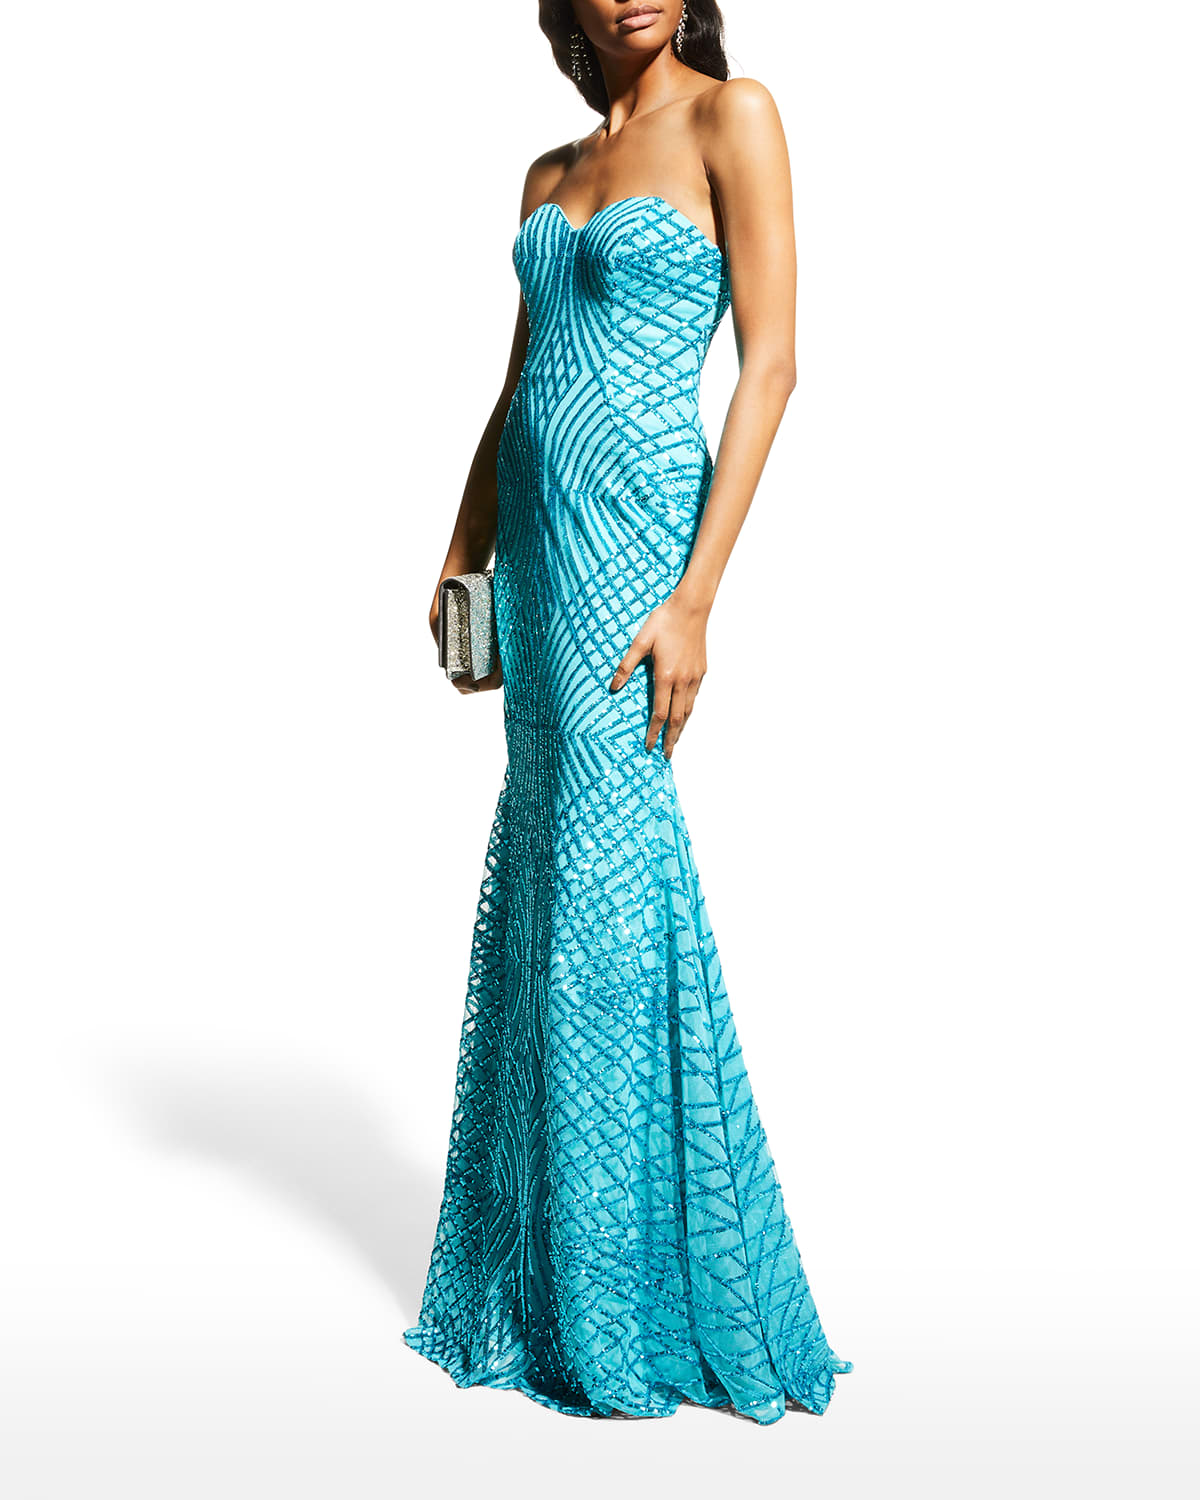 Strapless Sequined Mermaid Gown